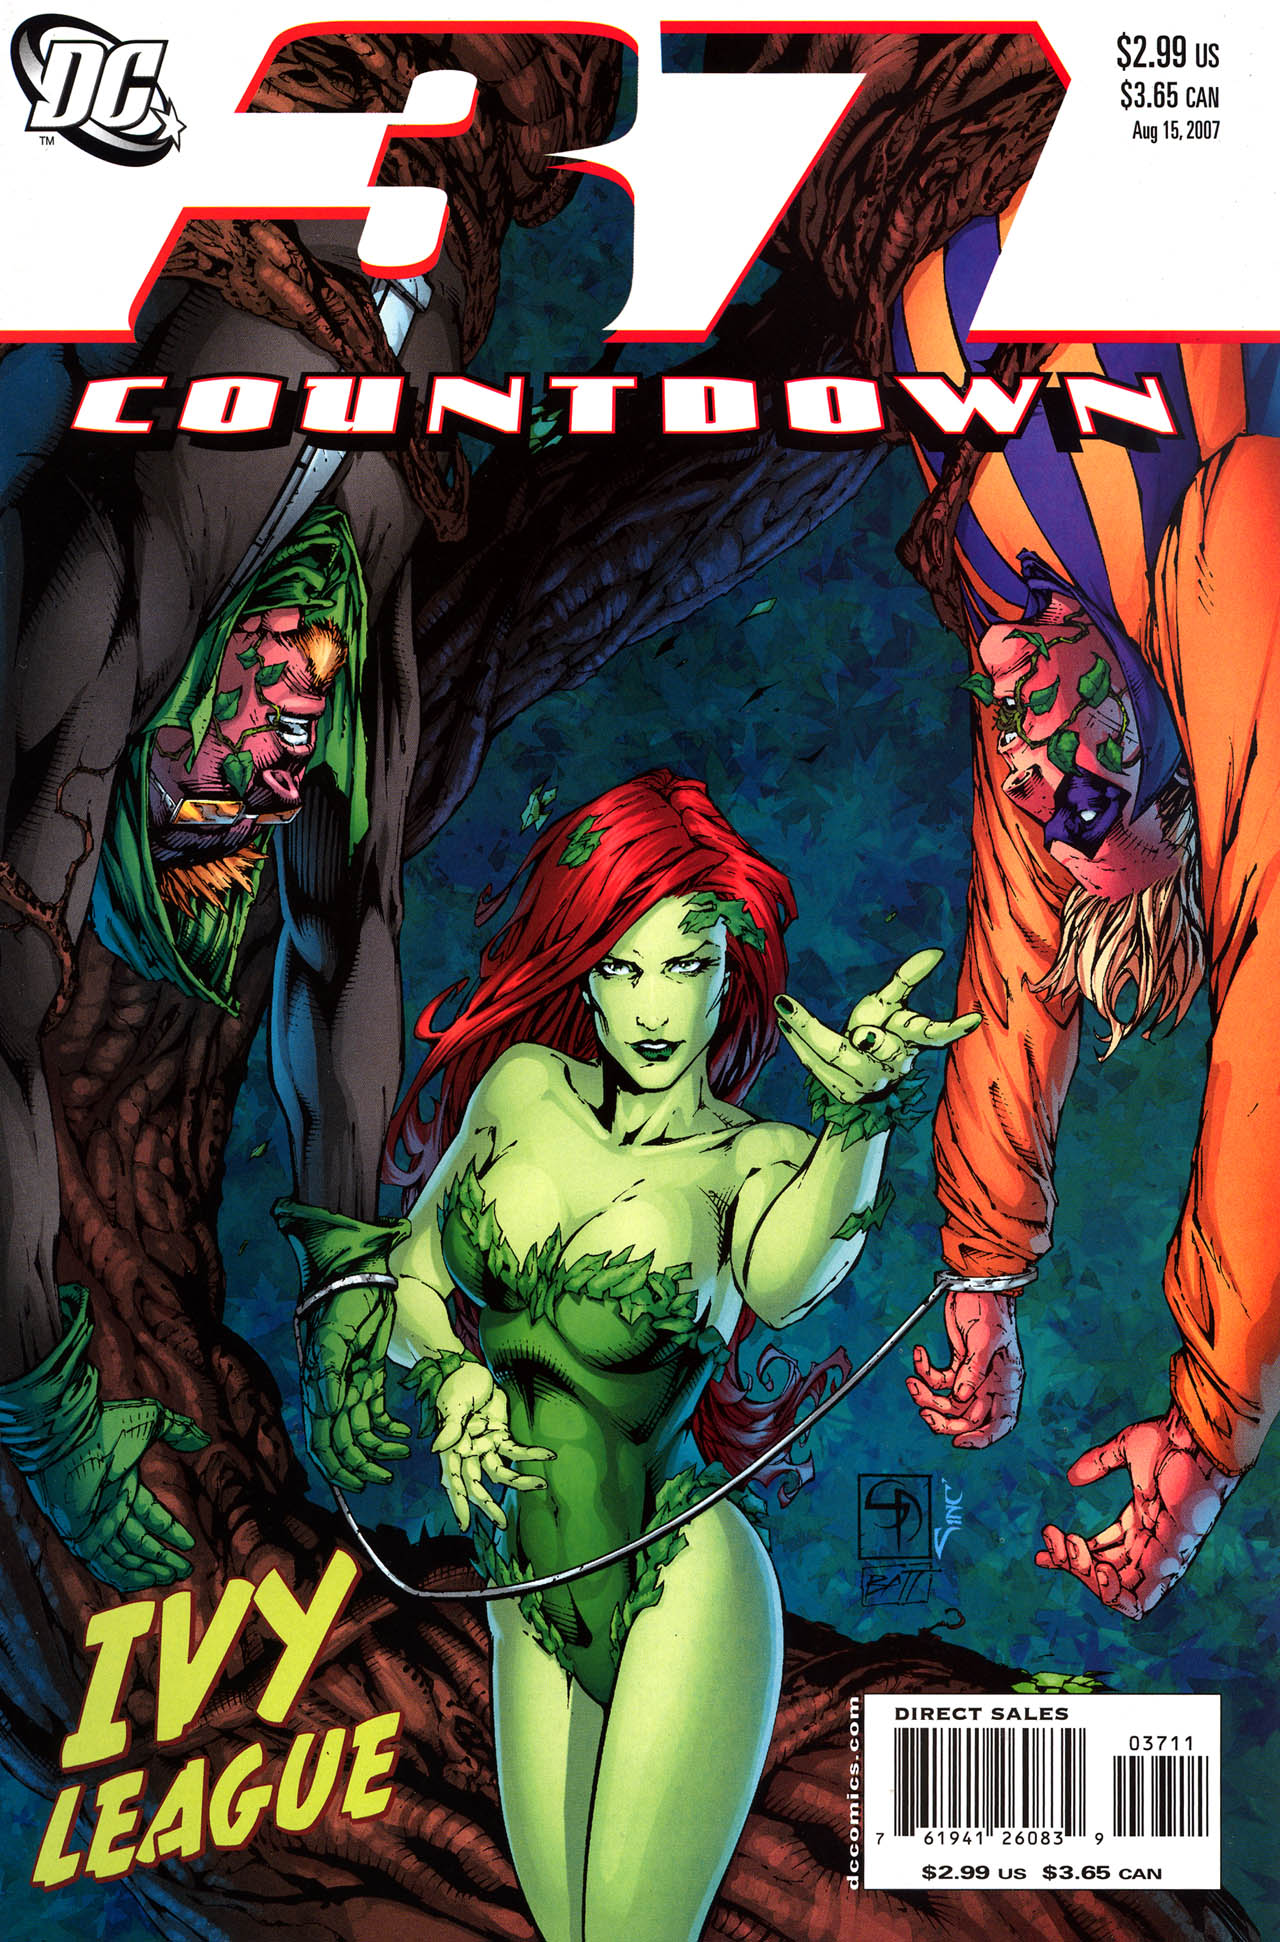 Countdown (2007) 37 Page 1